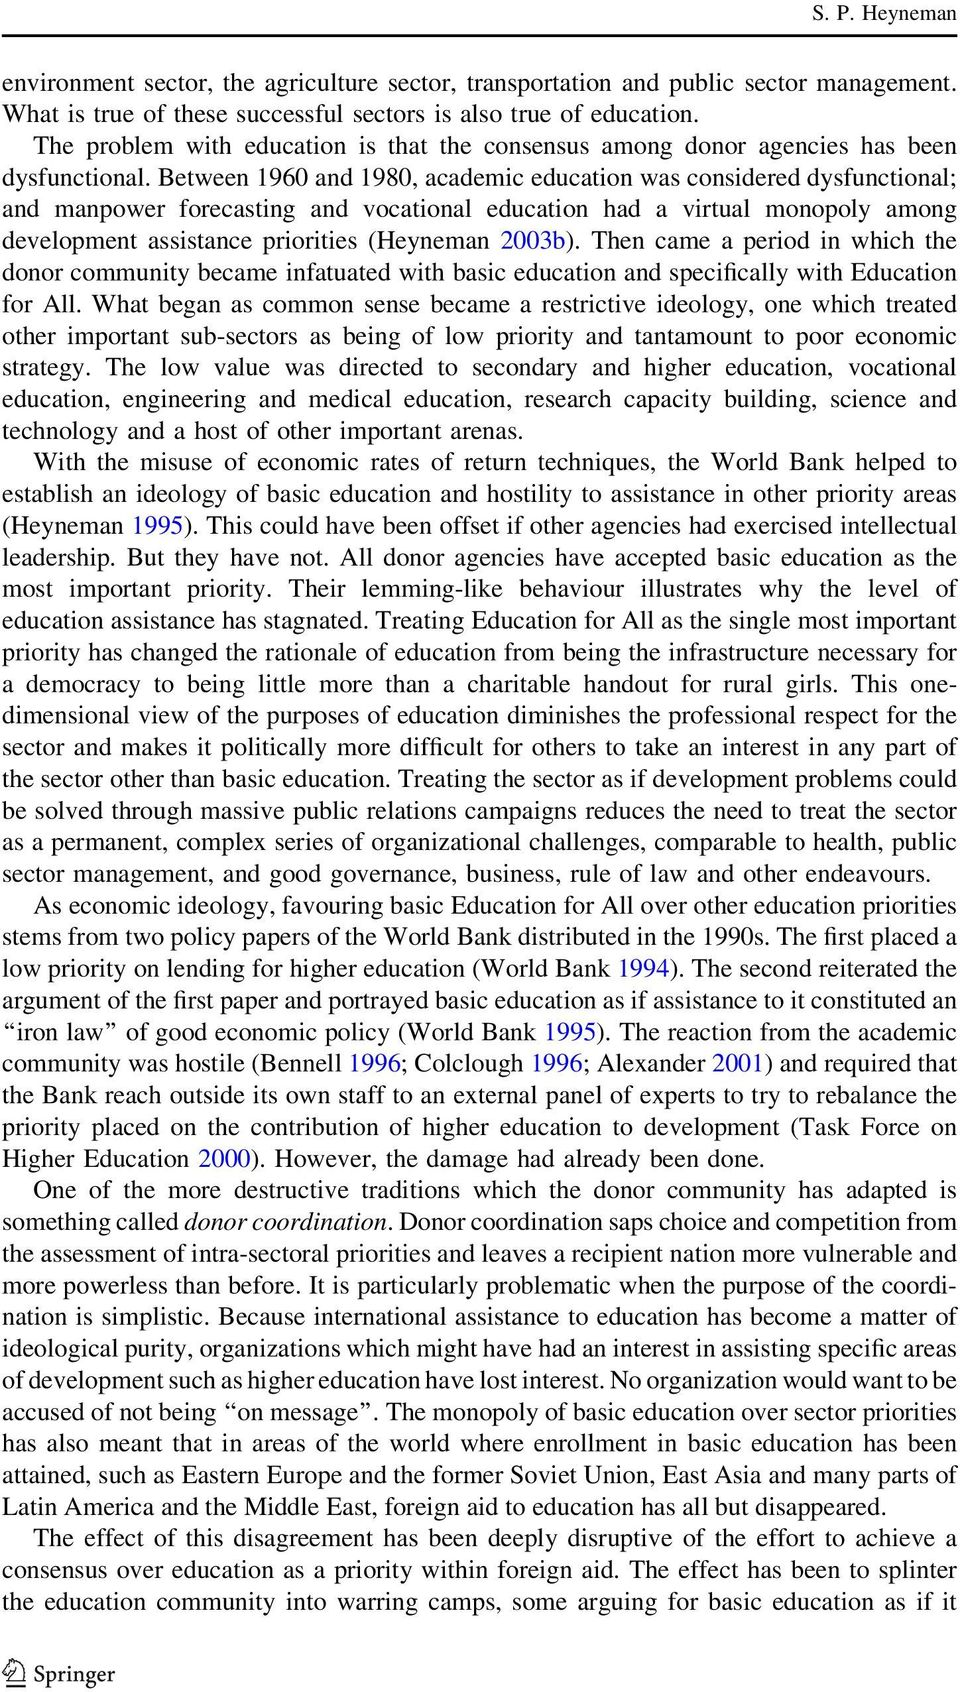 Between 1960 and 1980, academic education was considered dysfunctional; and manpower forecasting and vocational education had a virtual monopoly among development assistance priorities (Heyneman